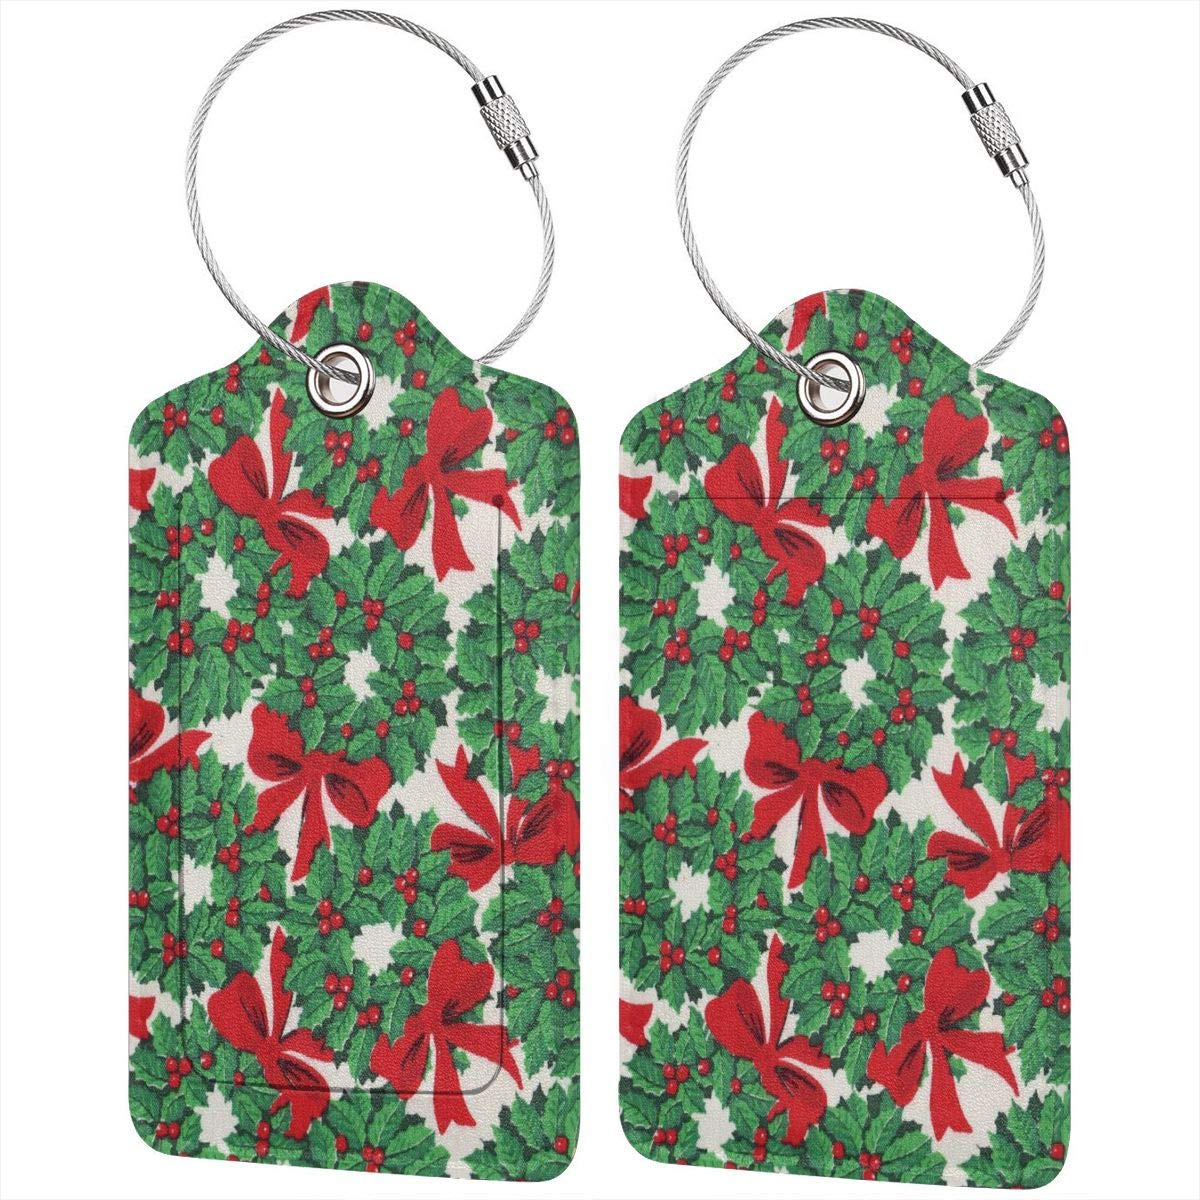 Leather Luggage Tags Full Privacy Cover and Stainless Steel Loop 1 2 4 Pcs Set Christmas Print Christmas Guys 2.7 x 4.6 Blank Tag Key Tags for Travel Suitcase Handbags Gift